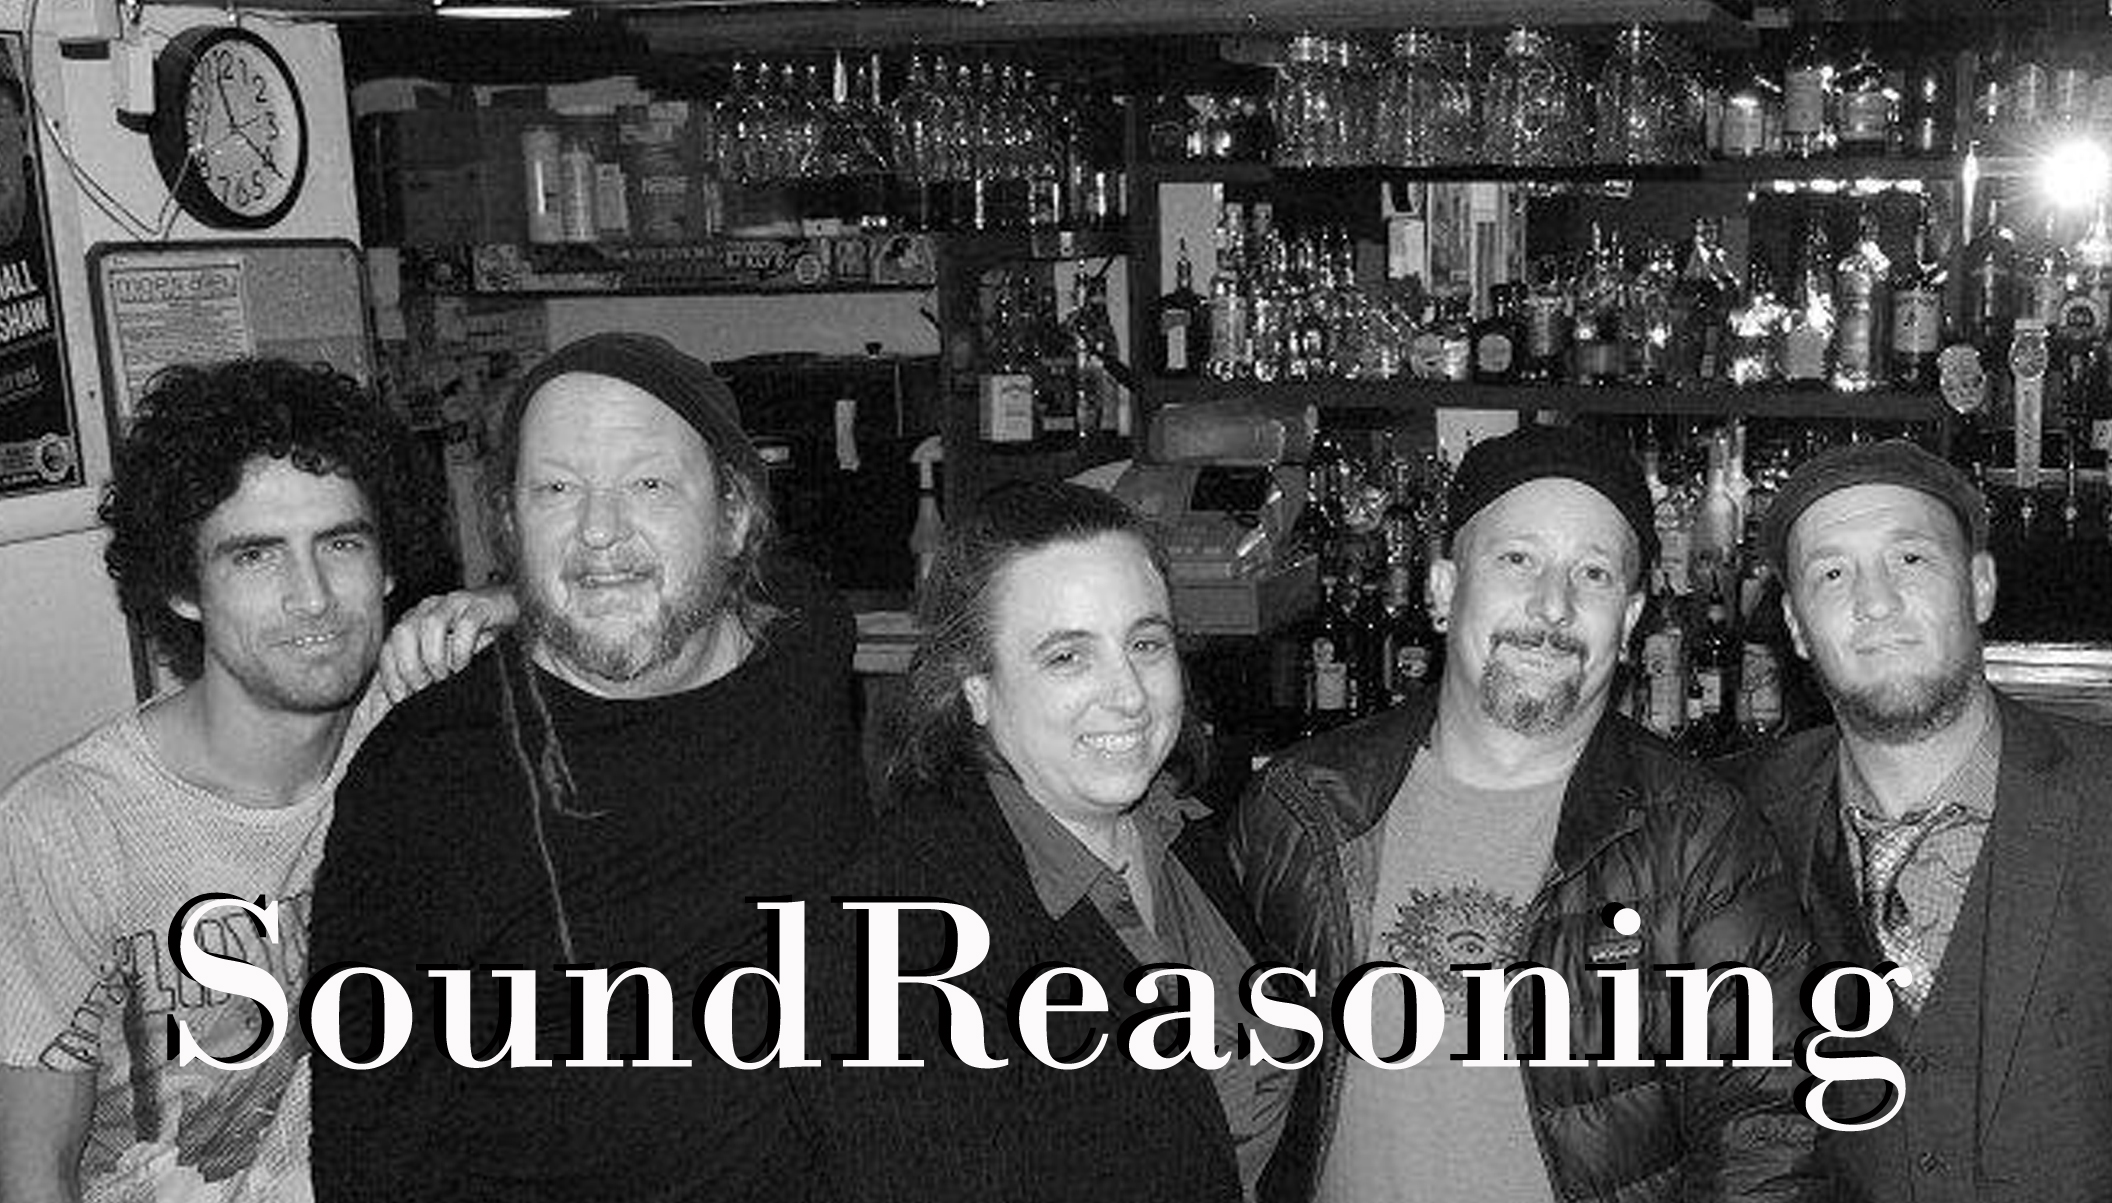 SoundReasoning Band